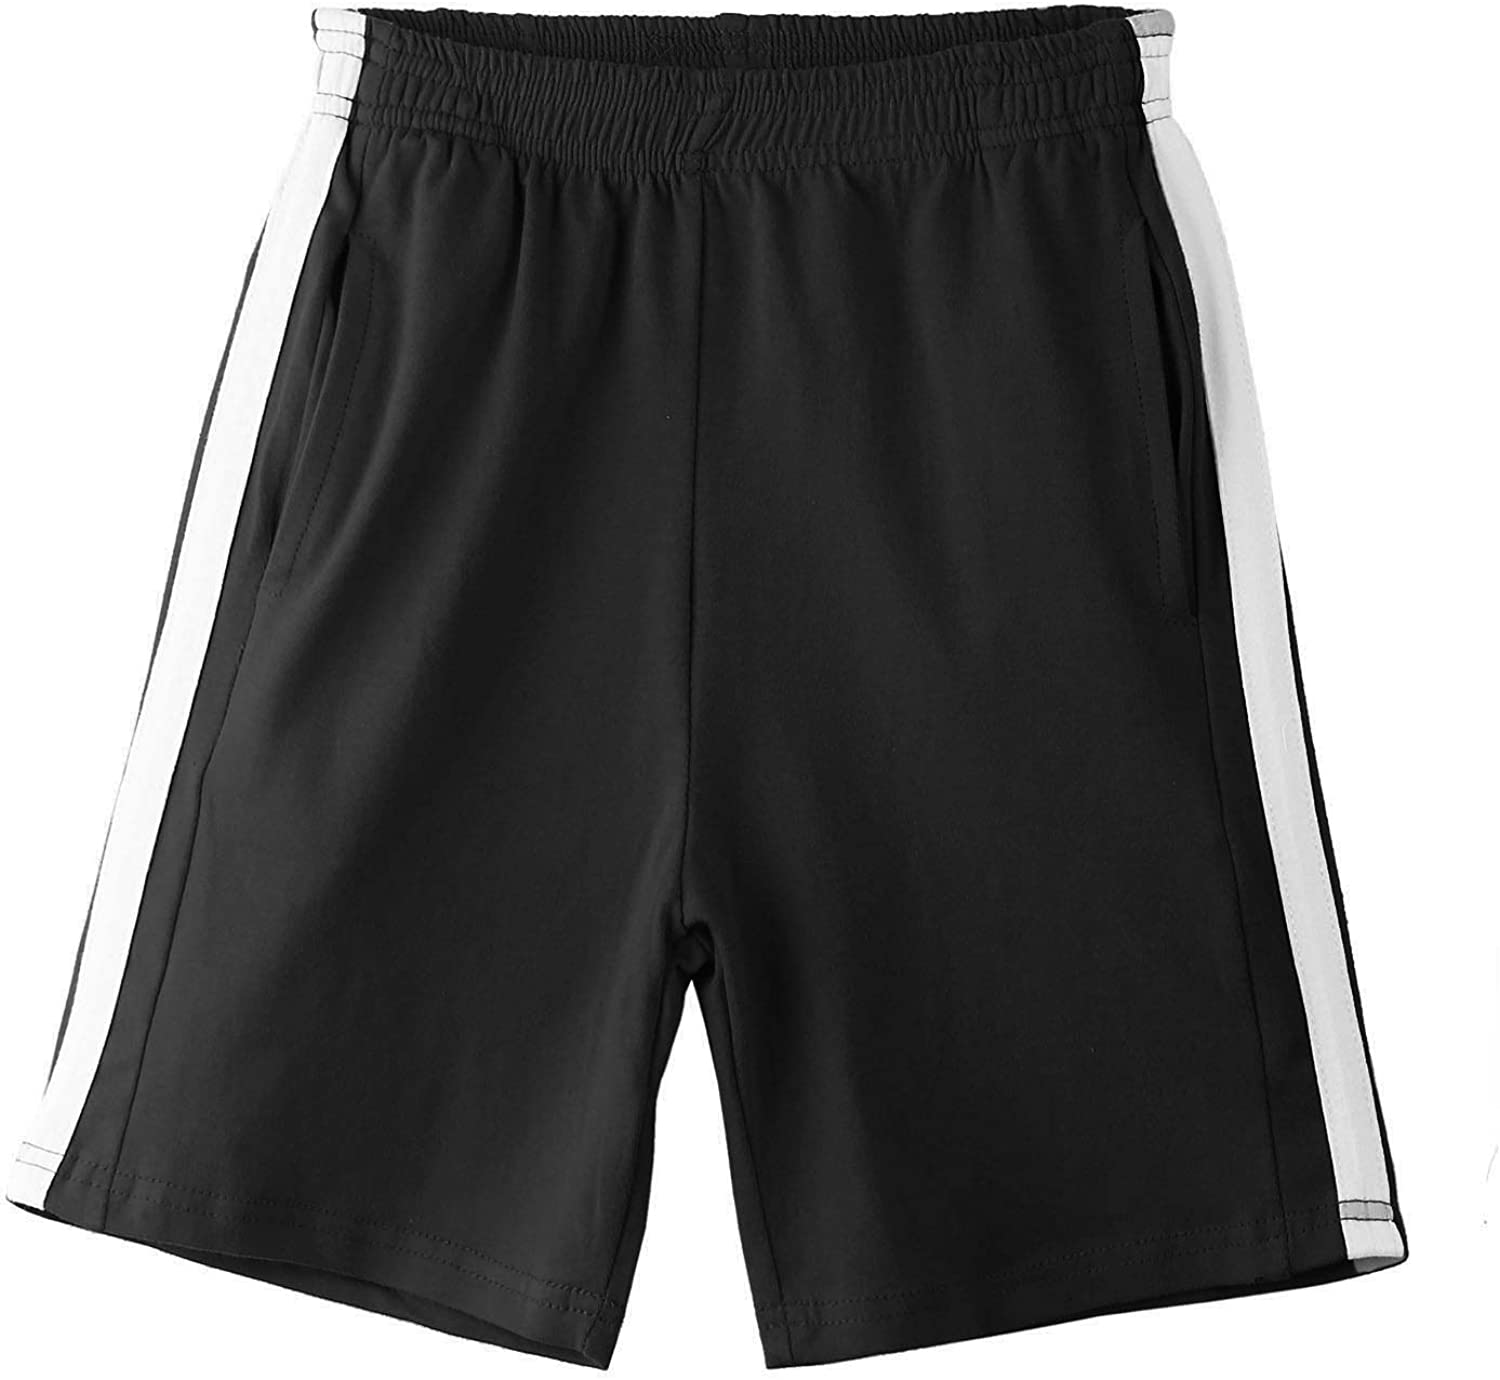 Arshiner Boys Active Shorts Sports Athletic Gym Summer Shorts for 5-12 Years